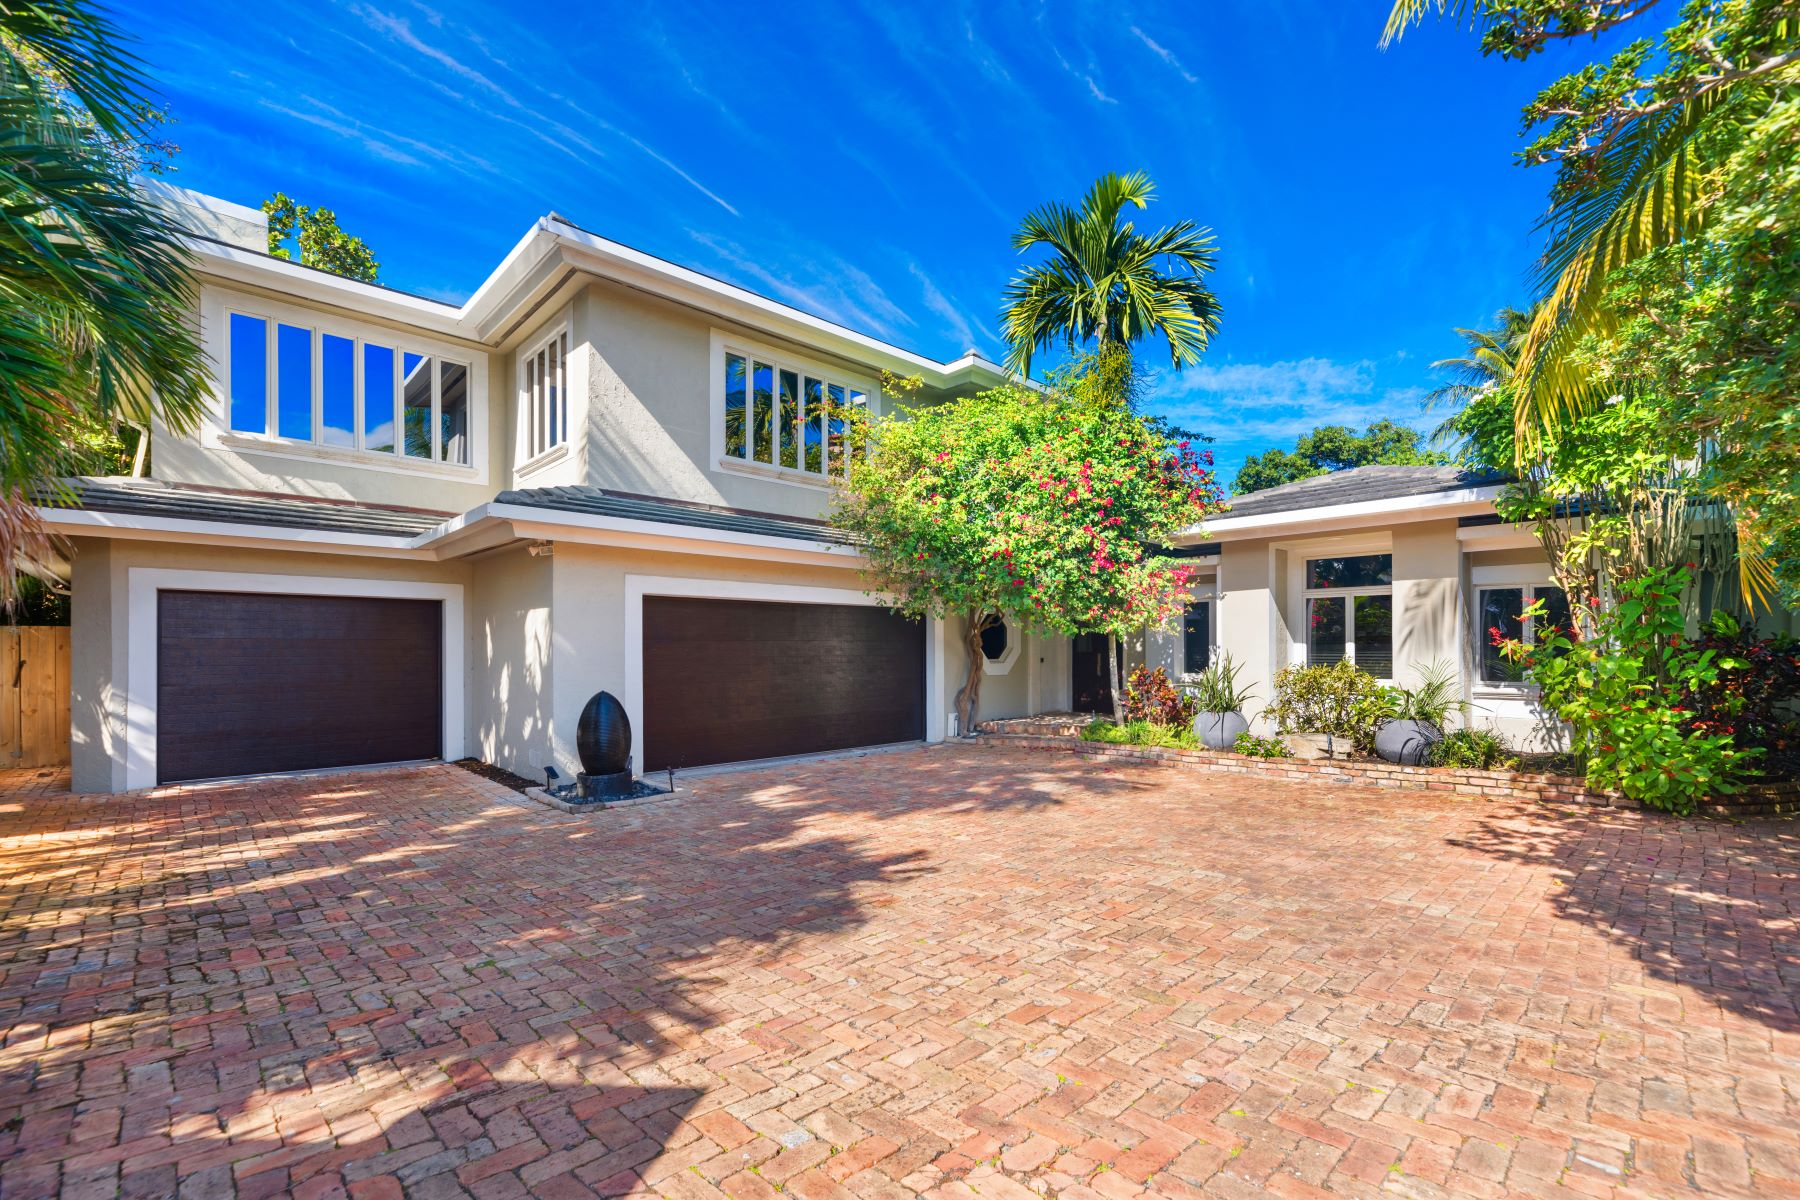 Single Family Homes for Active at 3301 Ne 16th St Fort Lauderdale, Florida 33304 United States